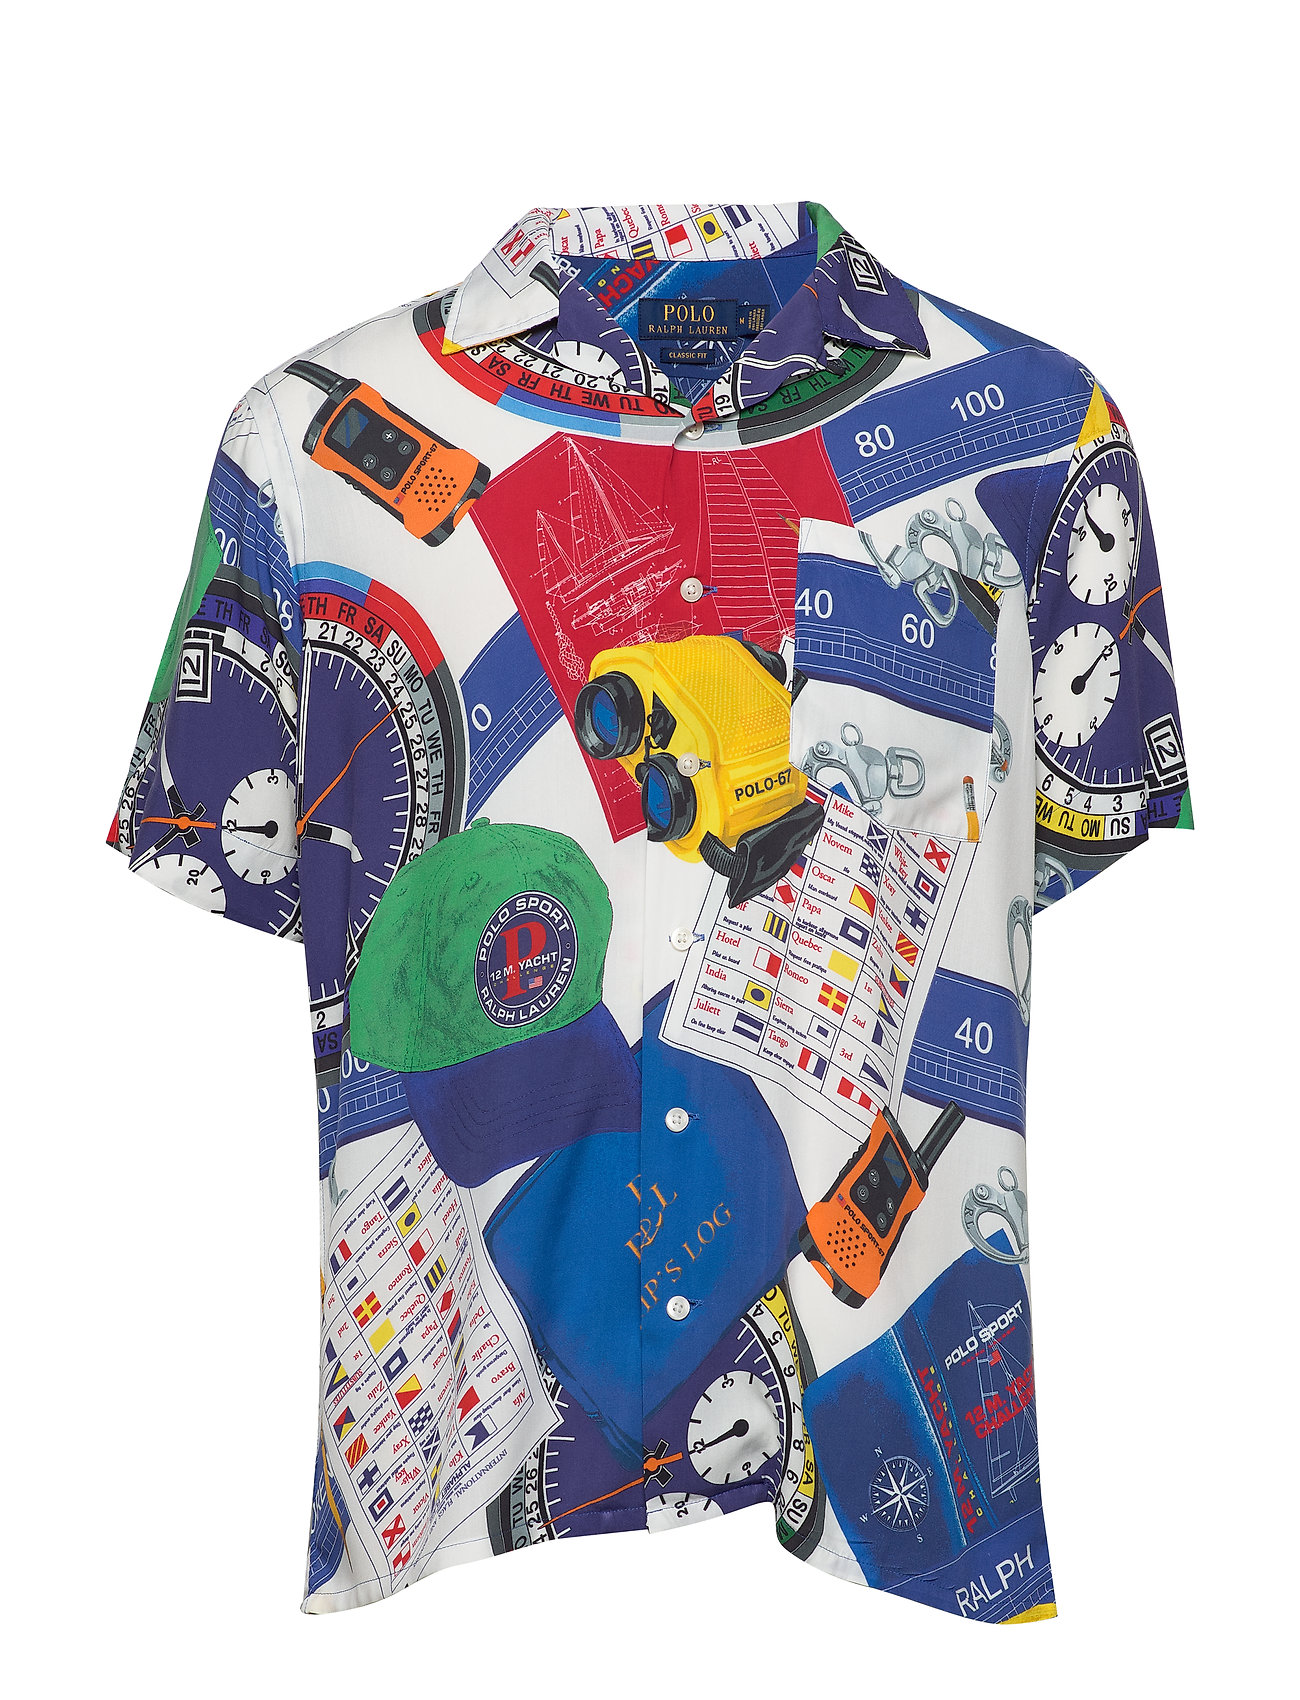 Polo Ralph Lauren Polo Sport Camp Shirt - 4758 NAVIGATIONAL